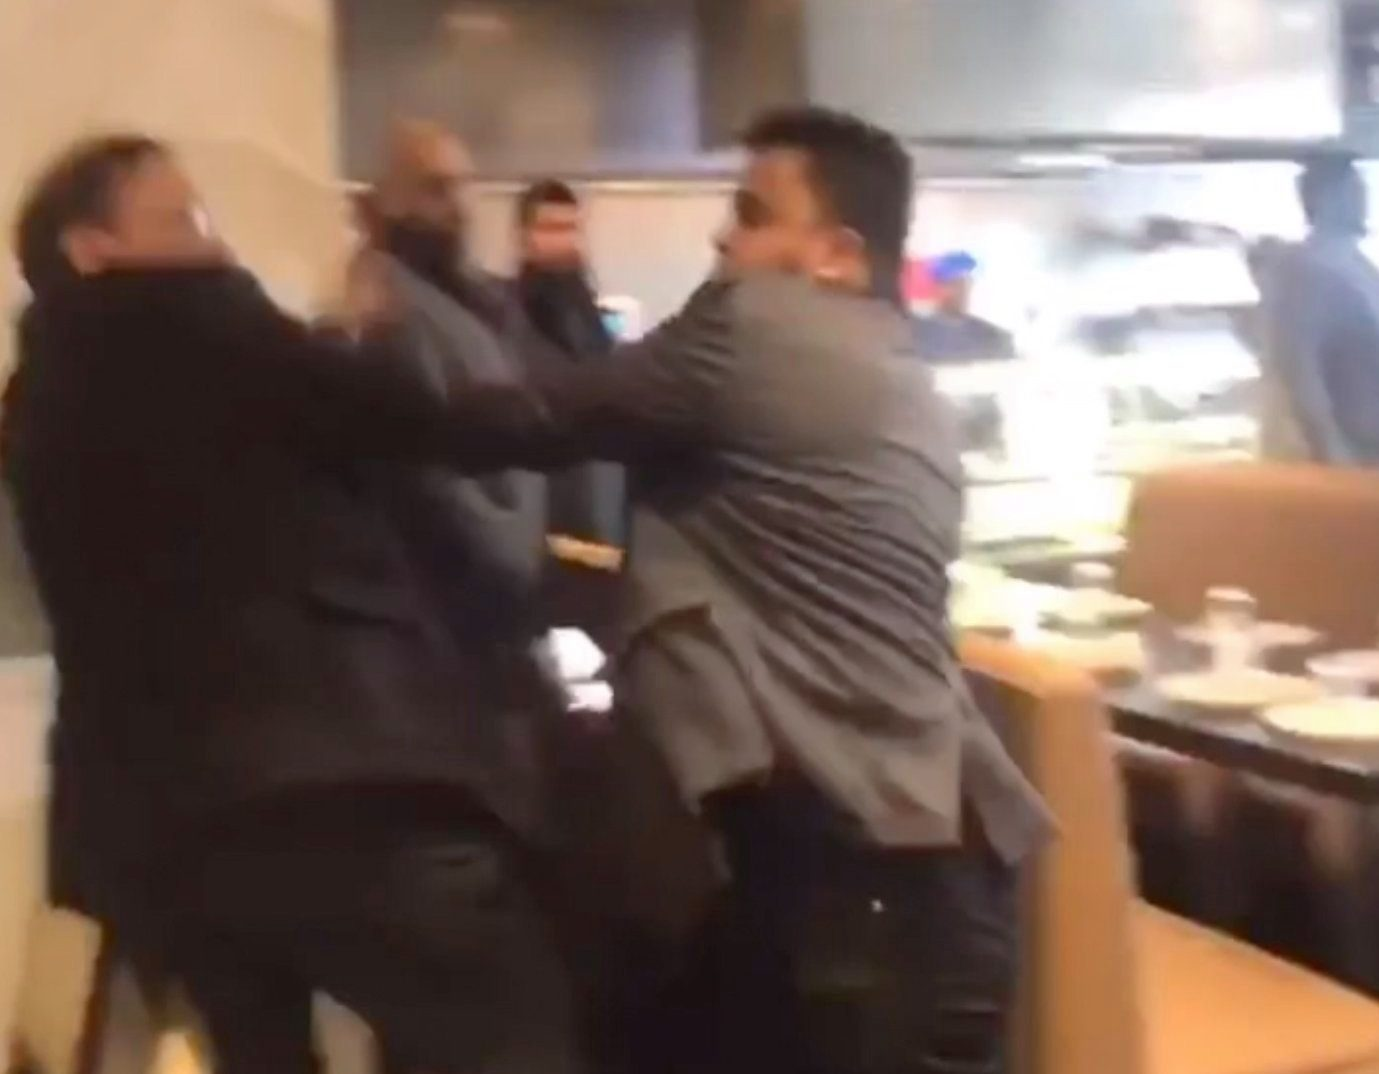 A fist fight breaks out inside Dawat restaurant during a mass brawl which led to a man being stabbed this morning in Southall, London, Monday 18th March, 2019. SHOCKING footage has emerged of the mass brawl which ended in a STABBING which left seven people injured in a restaurant in West London this morning. The terrifying brawl ? which turned into a knife fight ? was filmed inside Dawat Restaurant on The Broadway, Southall this morning. Police were called to The Broadway shortly after 11am and found a man in his 20s with a slash injury, who was taken to hospital. Paramedics said seven people were treated for injuries with three of those rushed to hospital. At least two people have been arrested and officers currently believe two groups were involved. The horrifying footage was filmed by a person who was eating at Dawat restaurant with their mother and sister this morning. In the clip, the men can be seen punching each other and throwing chairs across the restaurant. The individual ? who wishes to remain anonymous ? said they were terrified by the brawl that ensued in the restaurant. ... SEE COPY AND VID ... PIC BY NEWS DOG MEDIA ... 0121 517 0019 ... pictures@newsdogmedia.co.uk